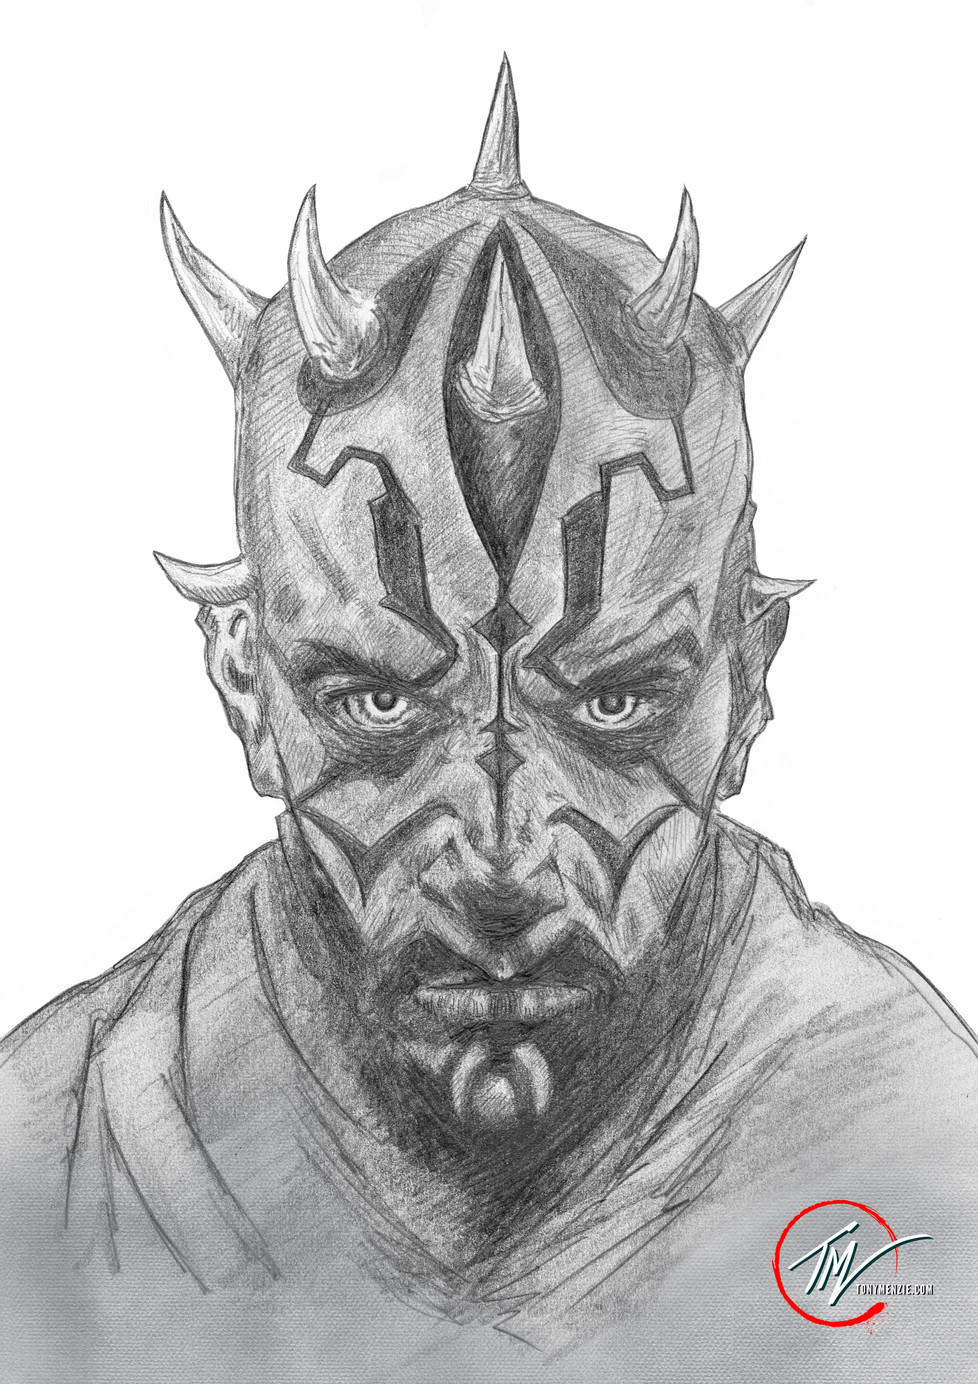 Darth Maul - Sketch B&W.jpg